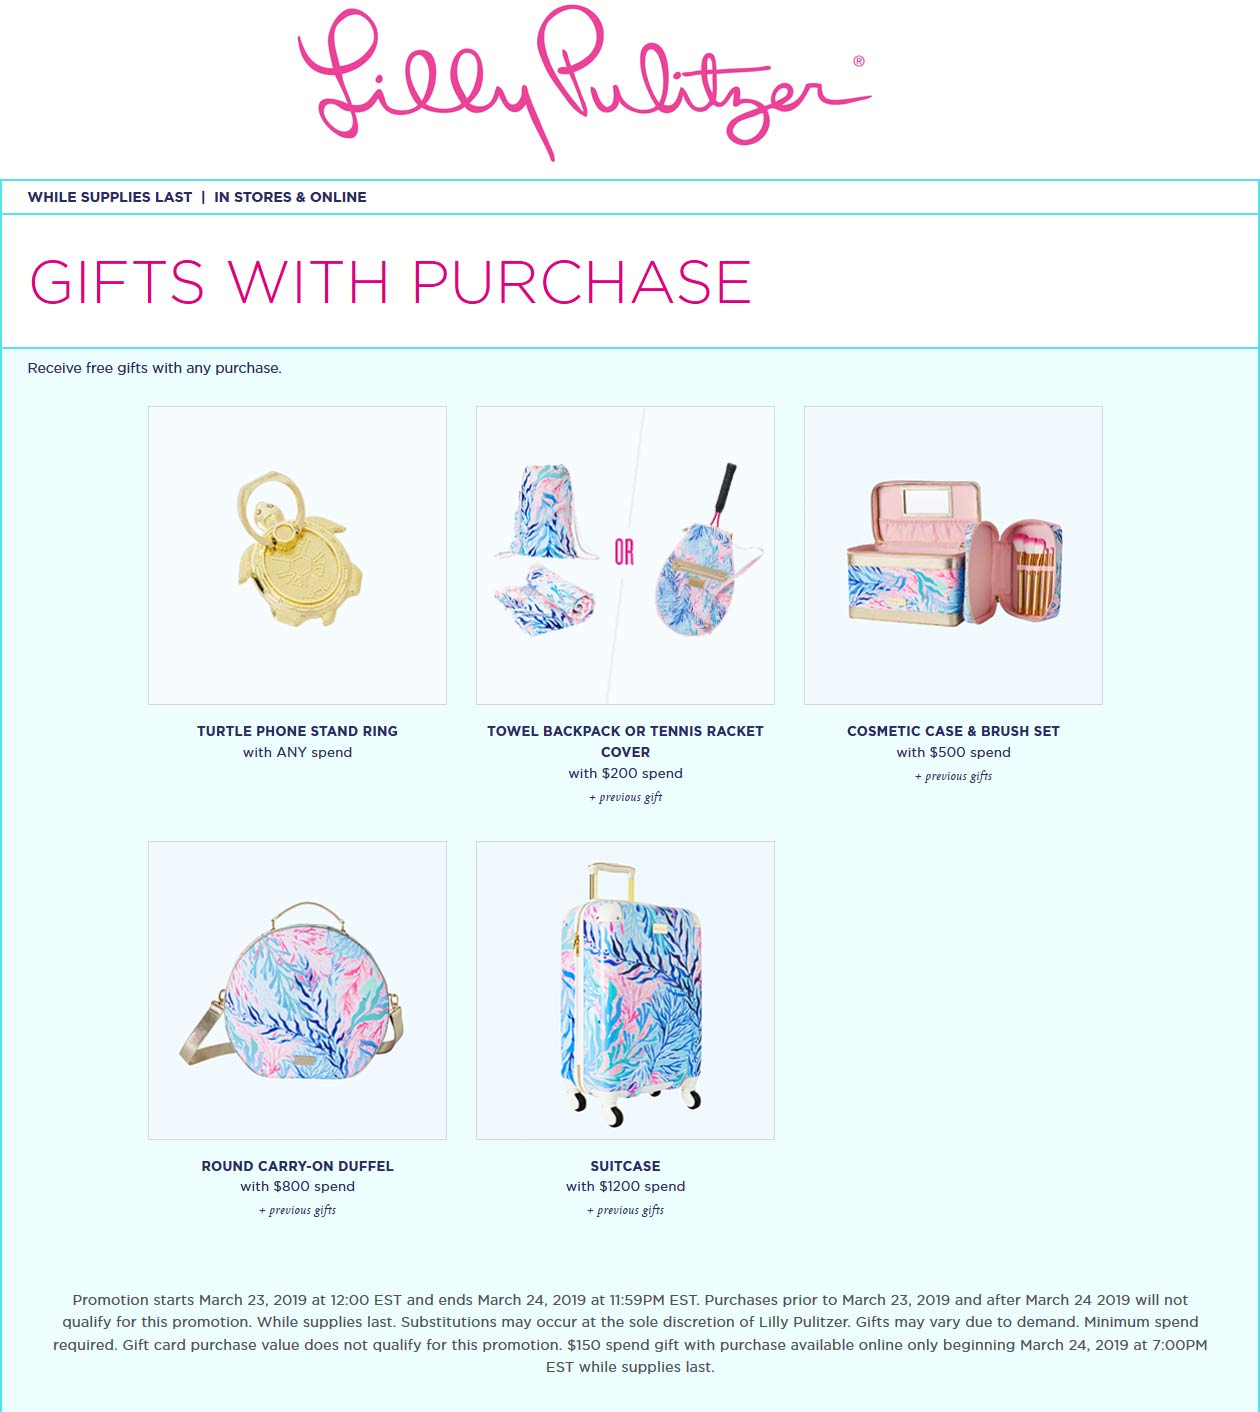 Lilly Pulitzer coupons & promo code for [July 2020]